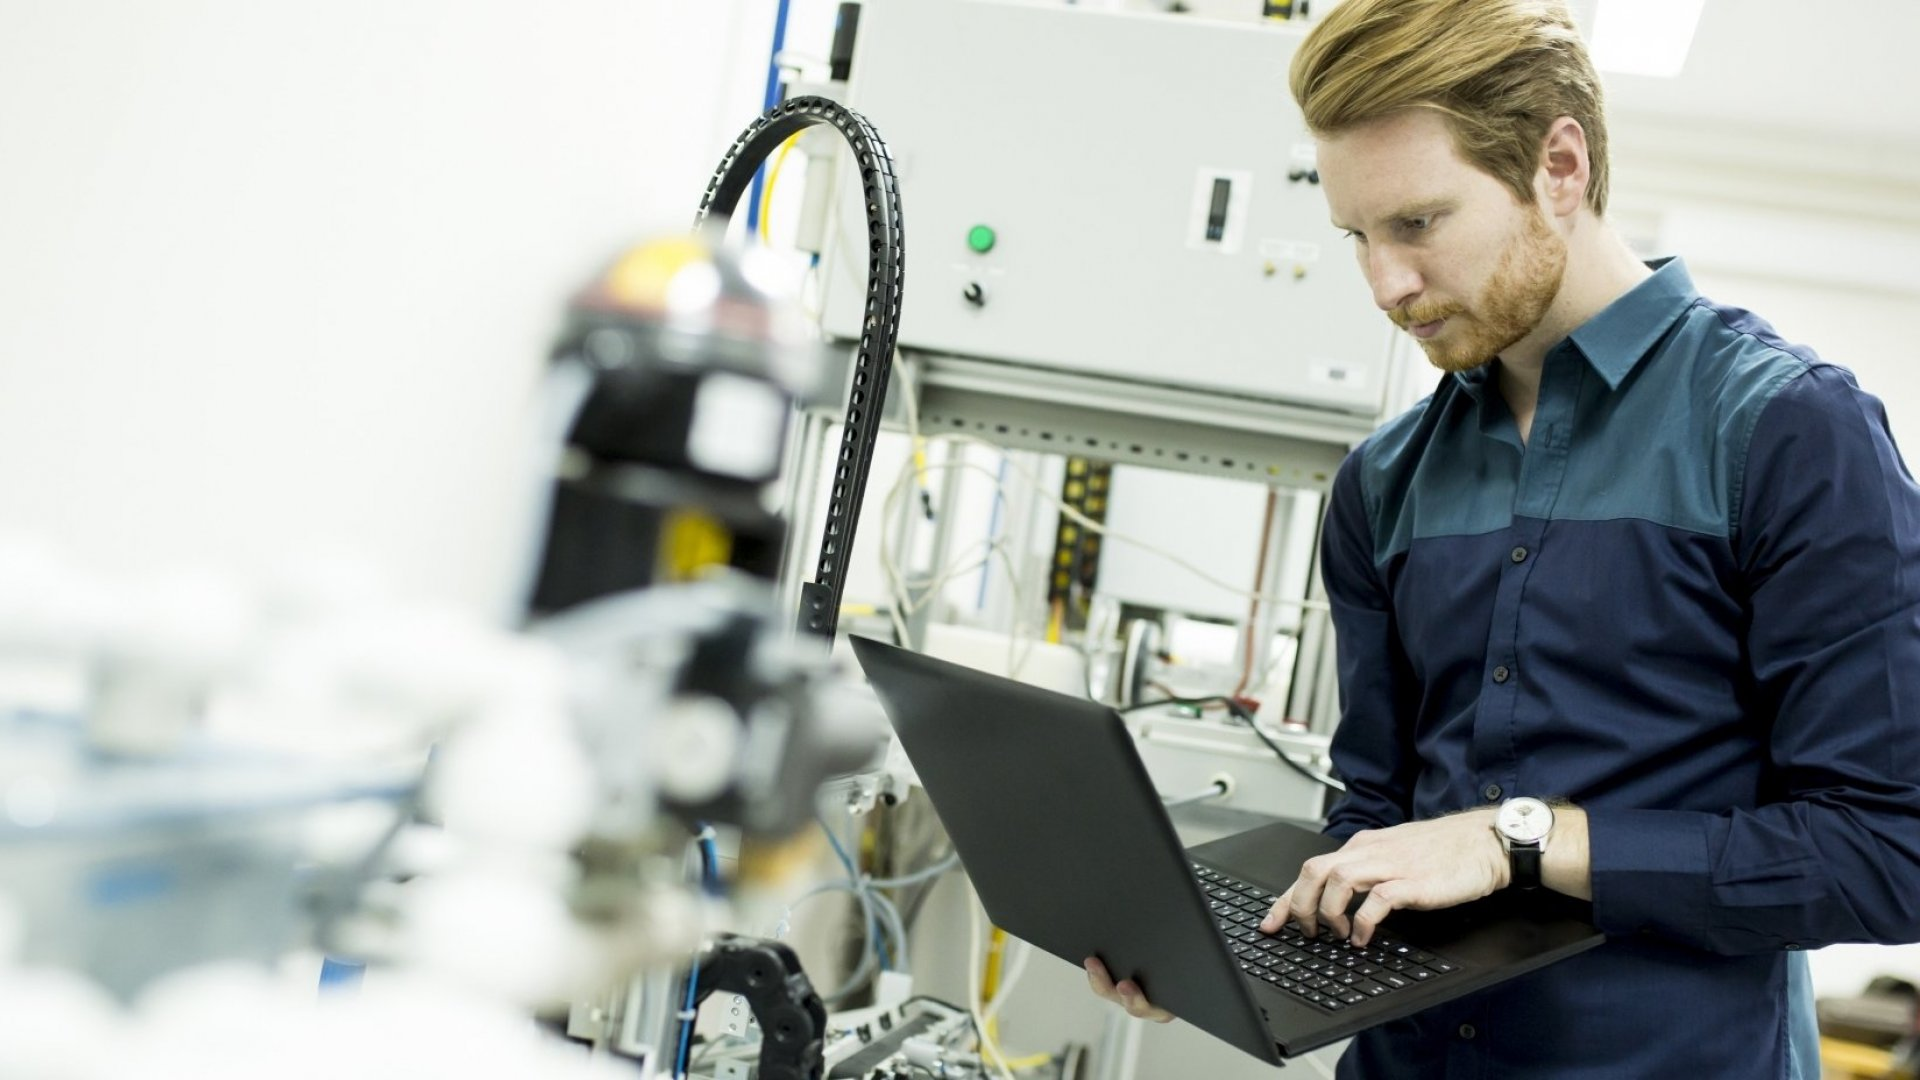 What if Humans are Really the Ones Taking Jobs Away from Robots?